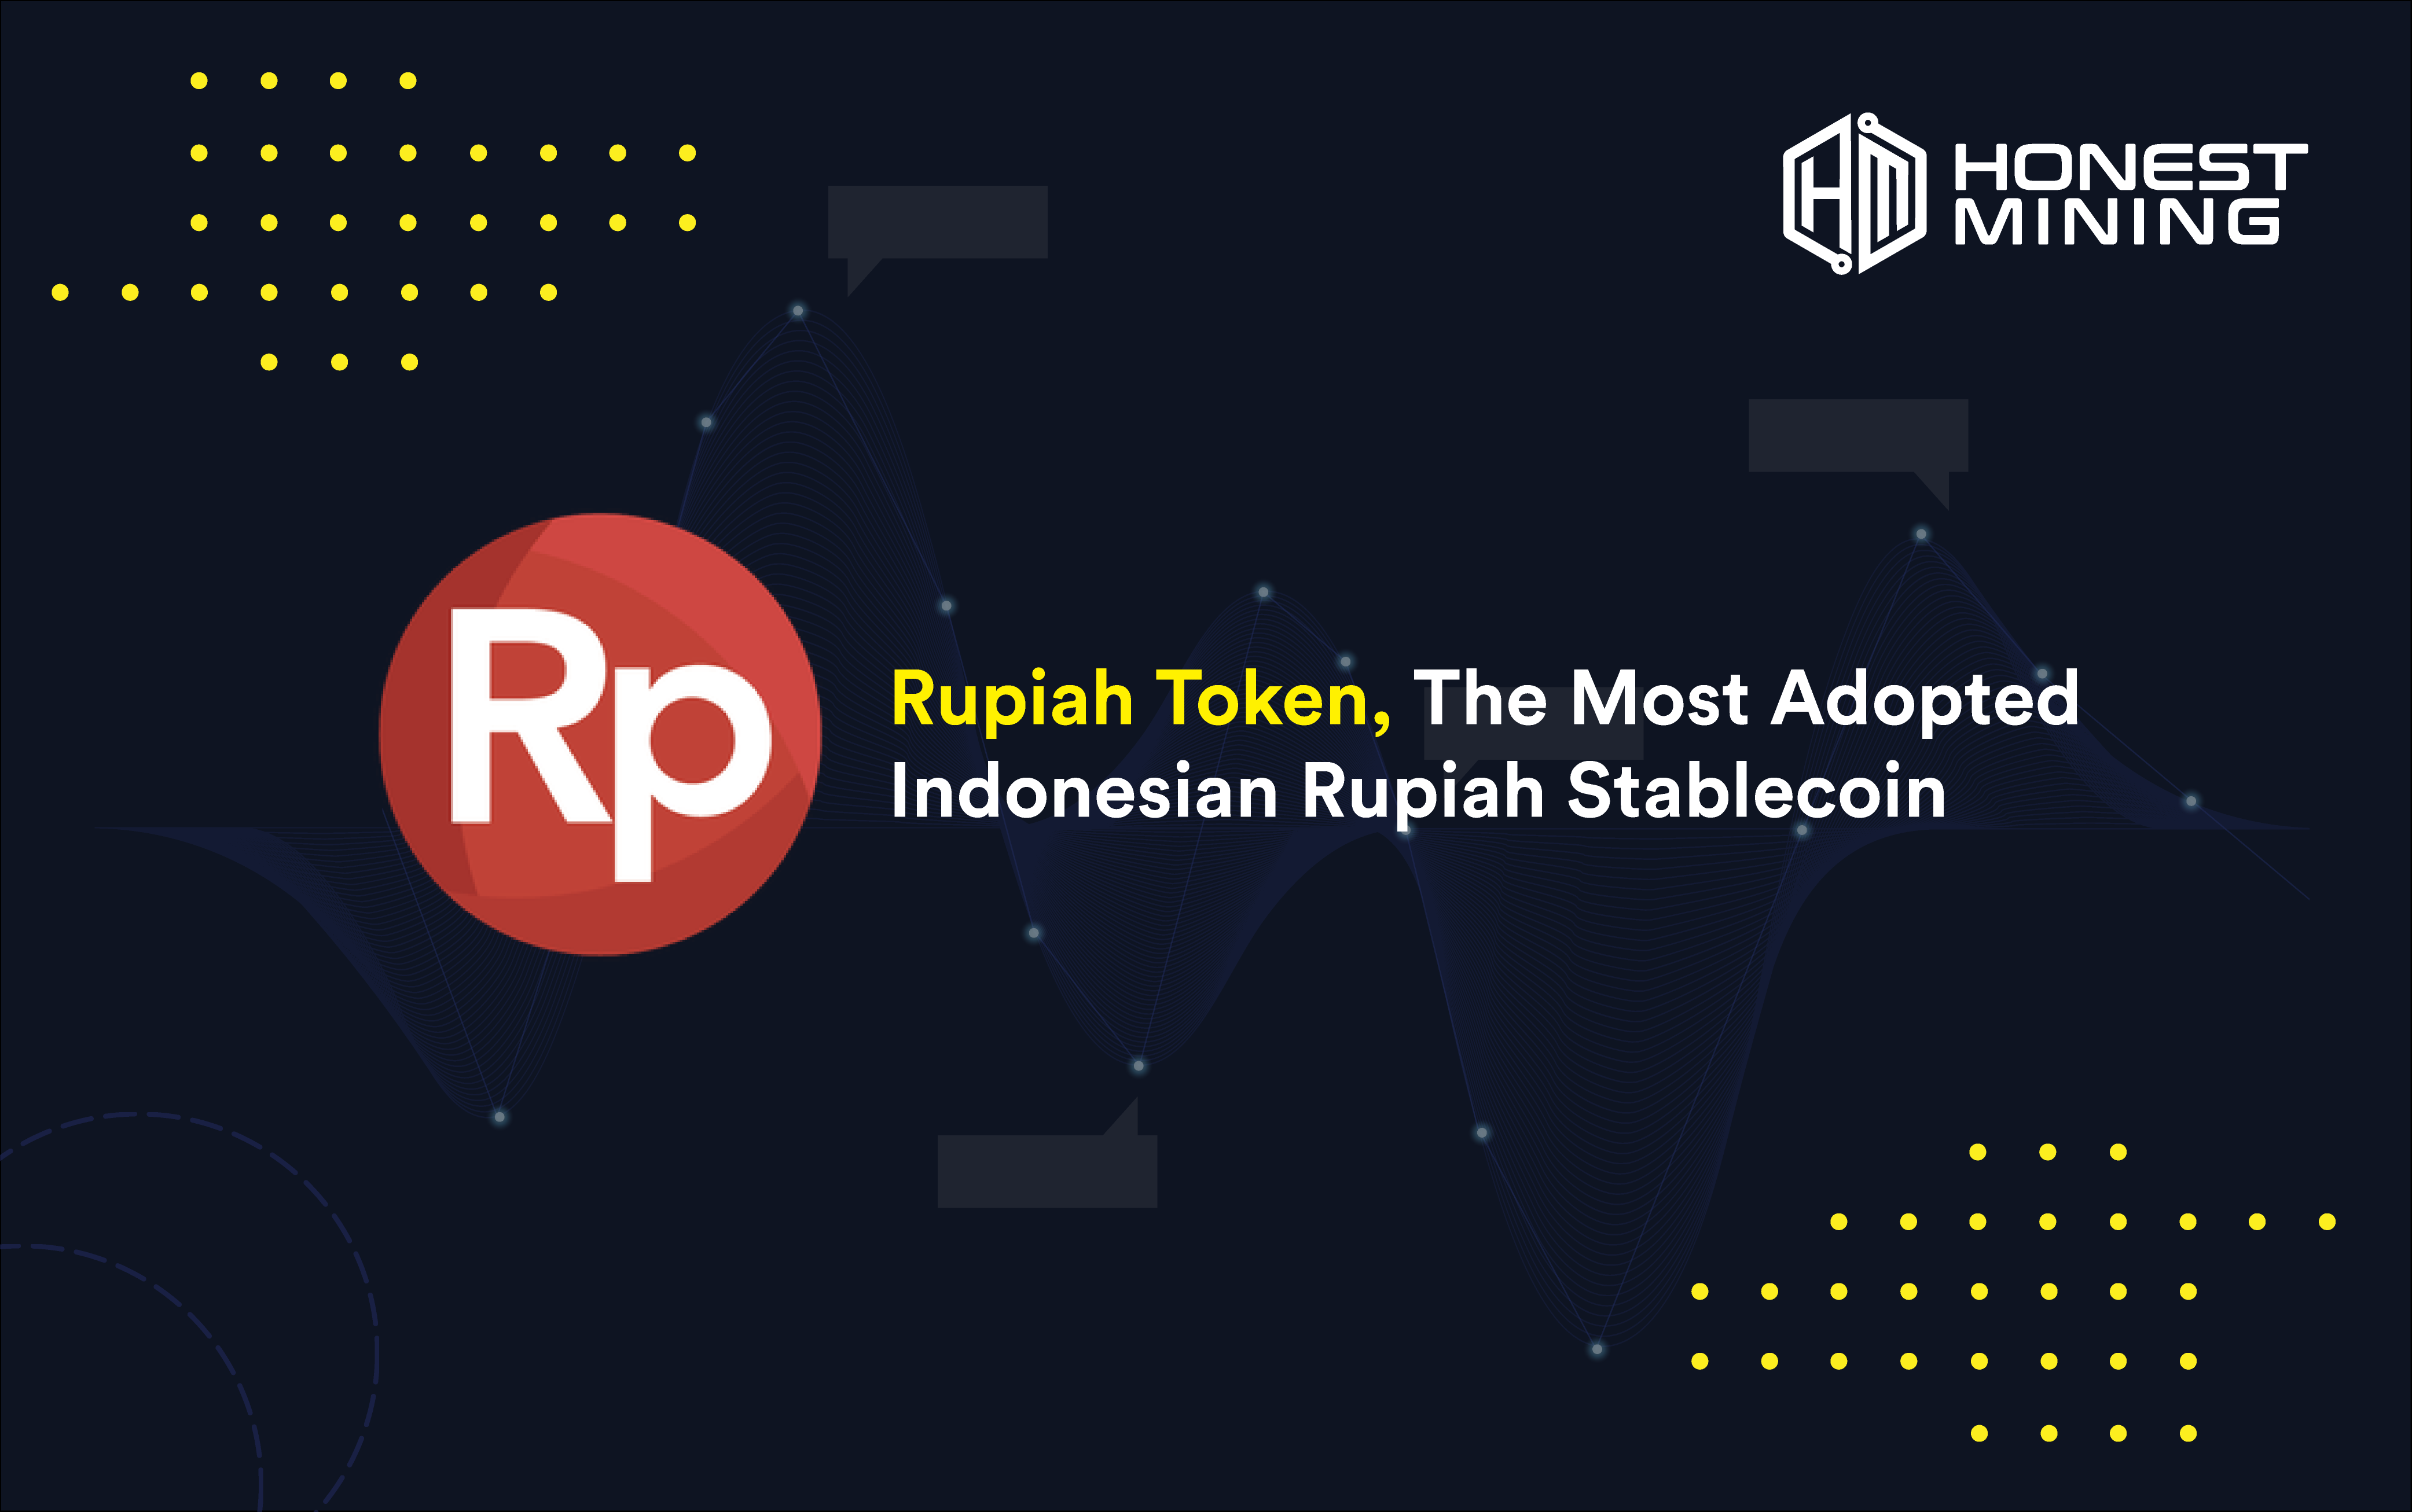 Rupiah Token, The Most Adapted Indonesian Rupiah Stablecoin